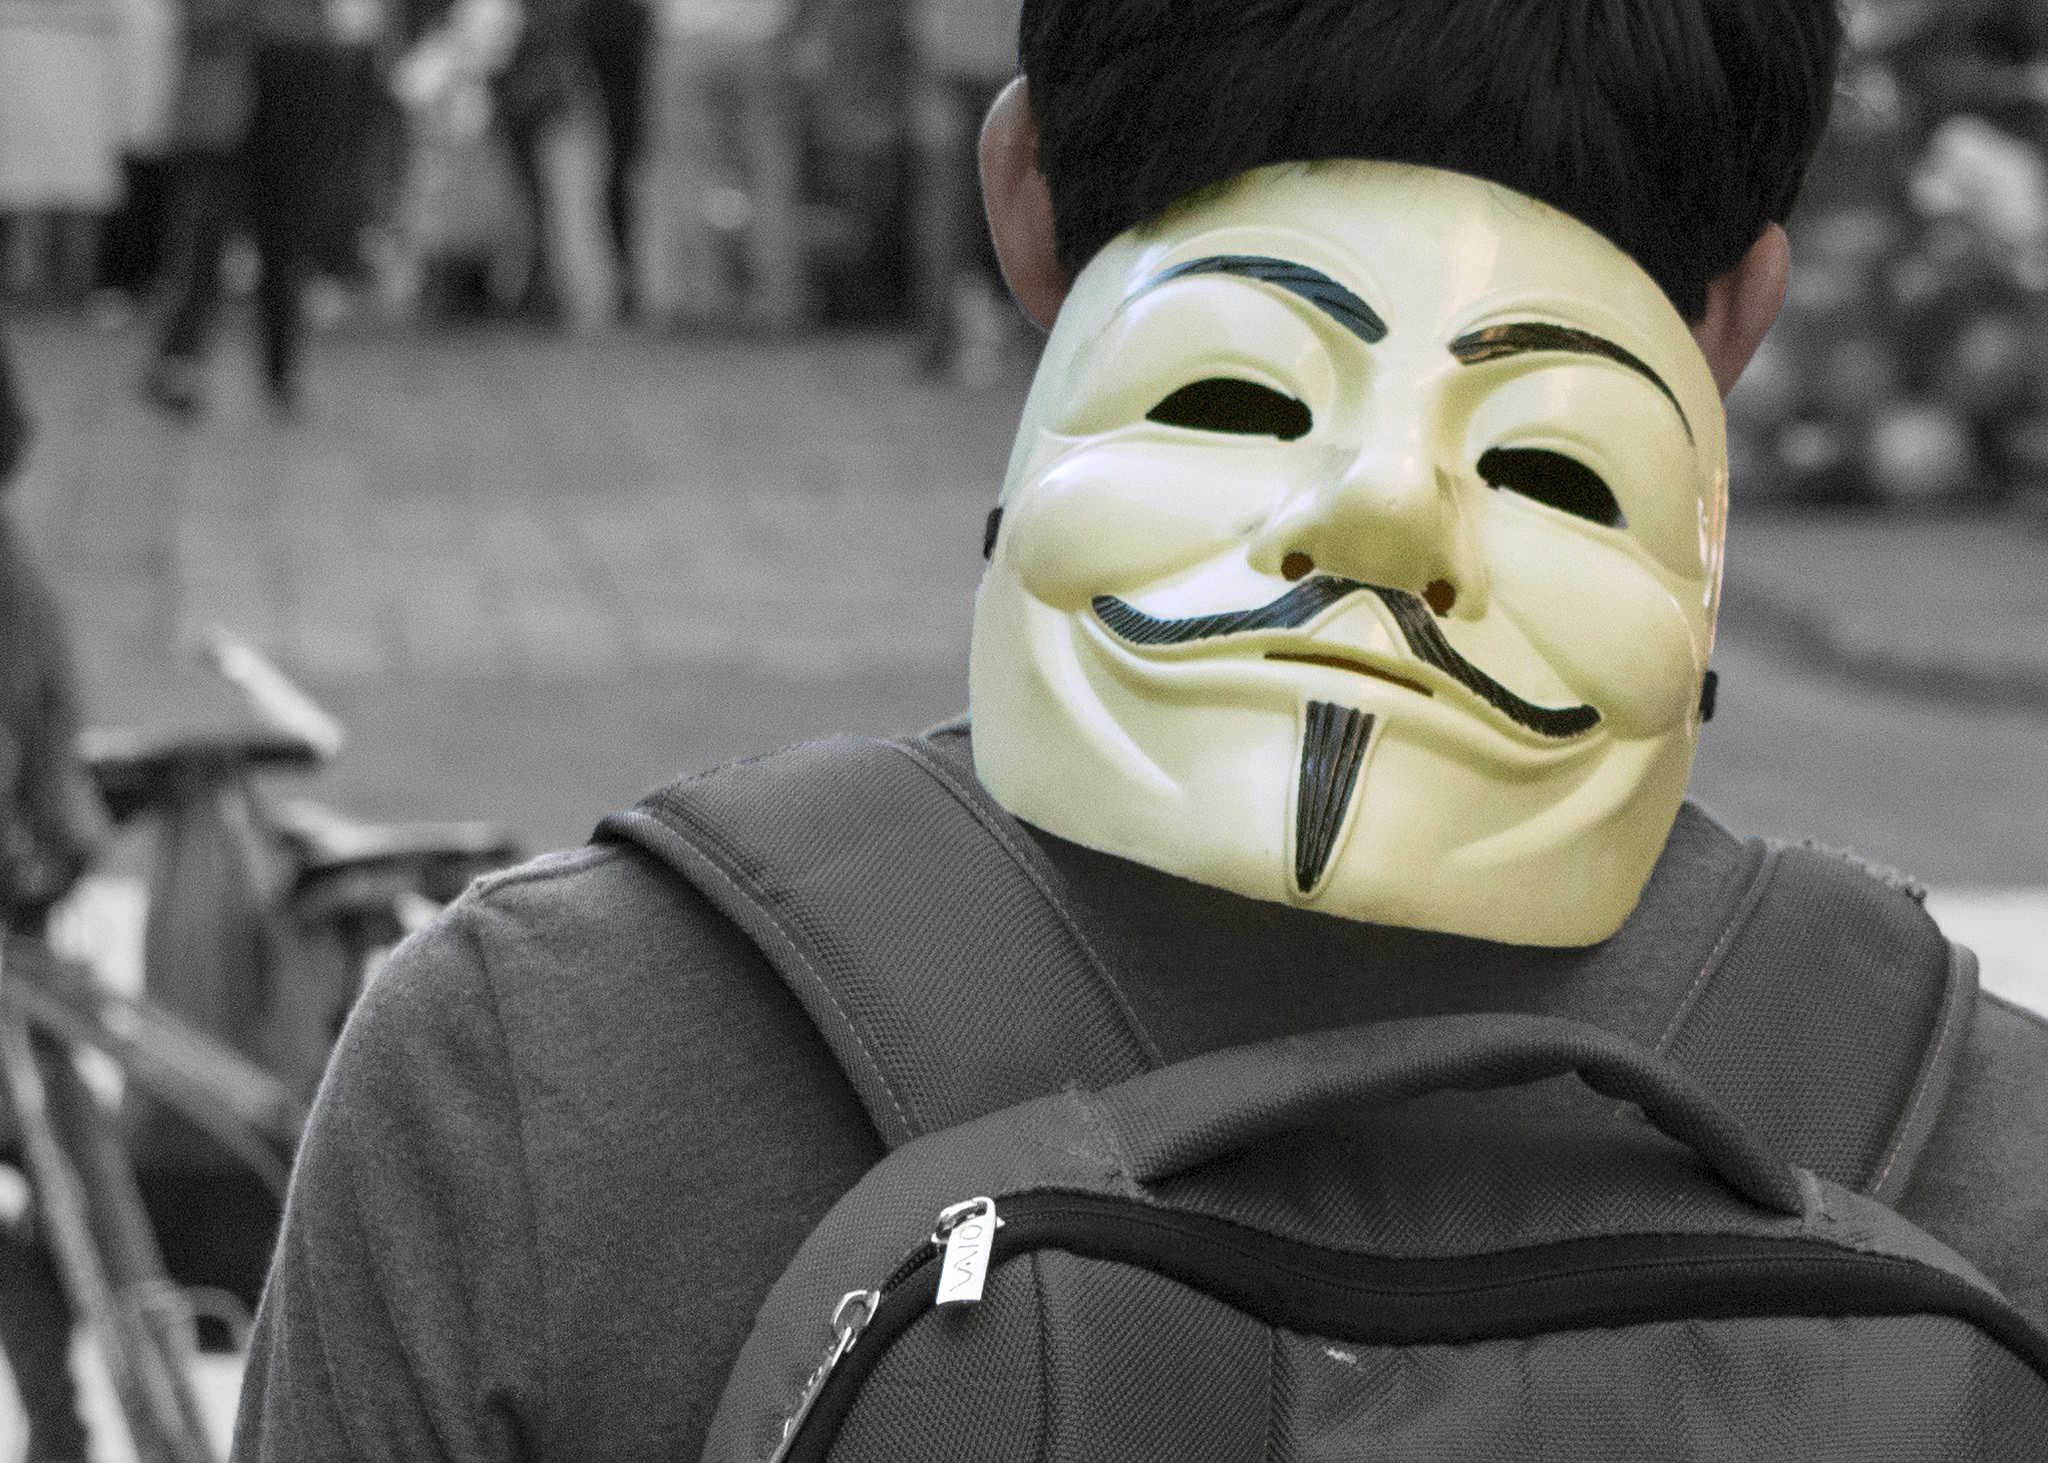 How to remain completely anonymous and hidden online | Comparitech